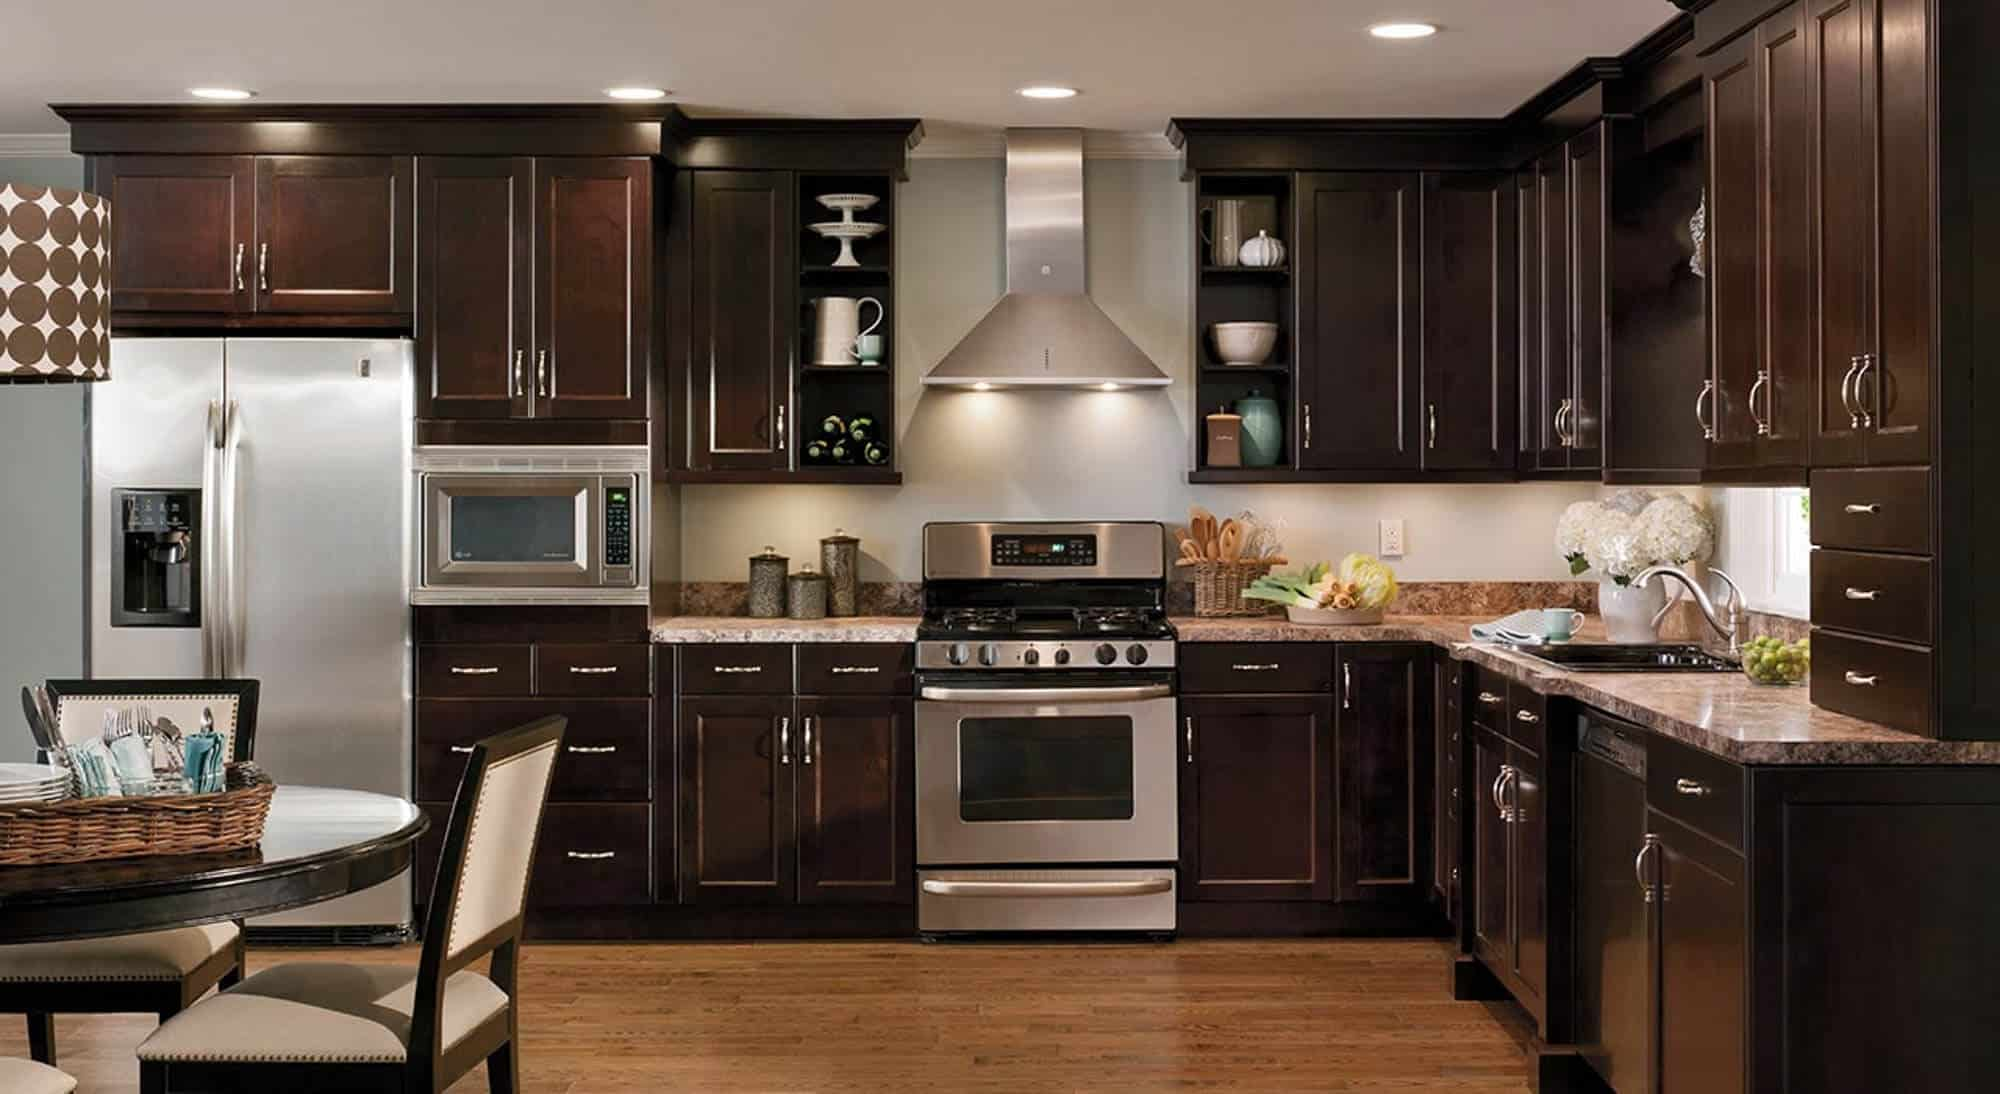 Beautiful Dark Woods Pair Well With Stainless Steel Appliances And Are Easy  To Coordinate With